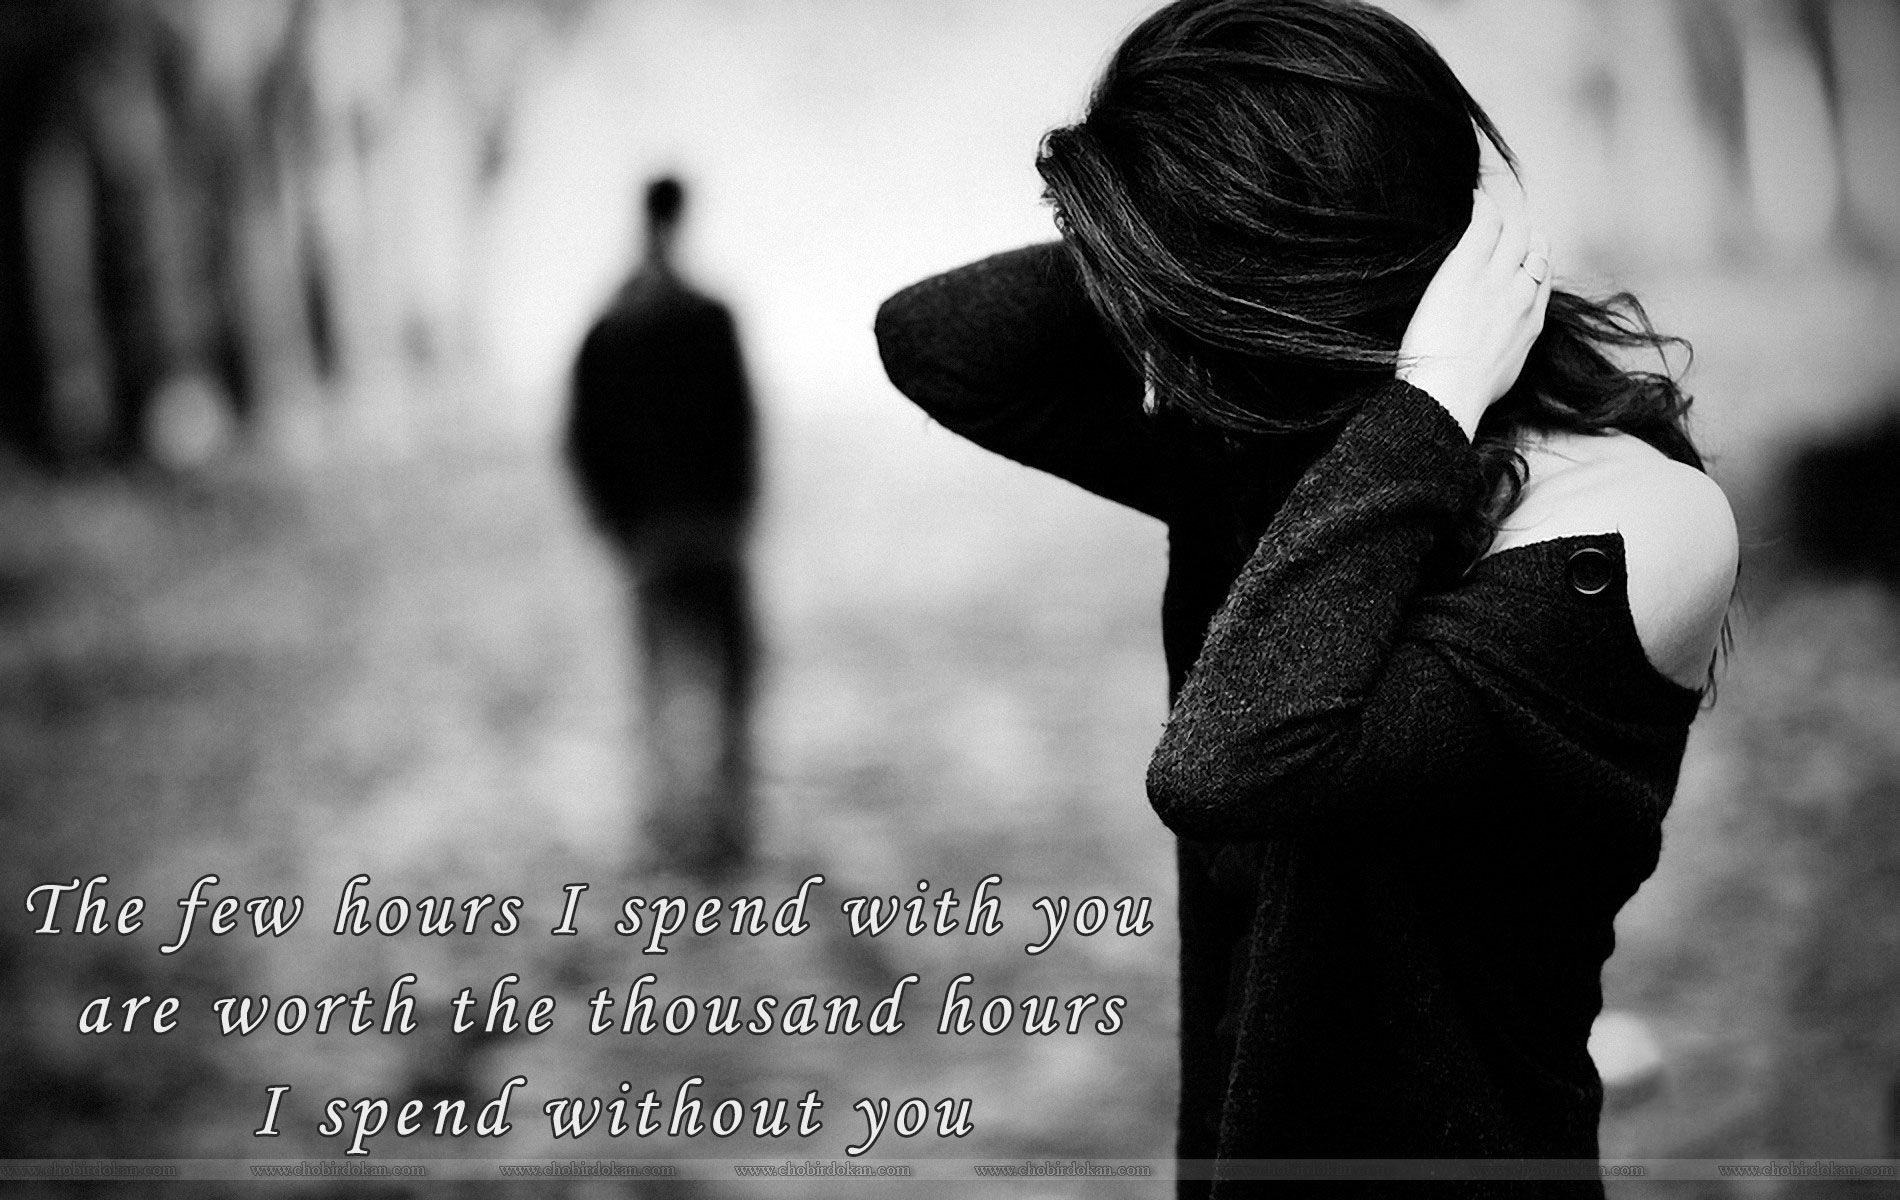 Cute Long Distance Relationship Quotes With Images For Your  Girlfriend,boyfriend Or Family. Best HD Wallpapers Of Quotes About Long  Distance Relationship.